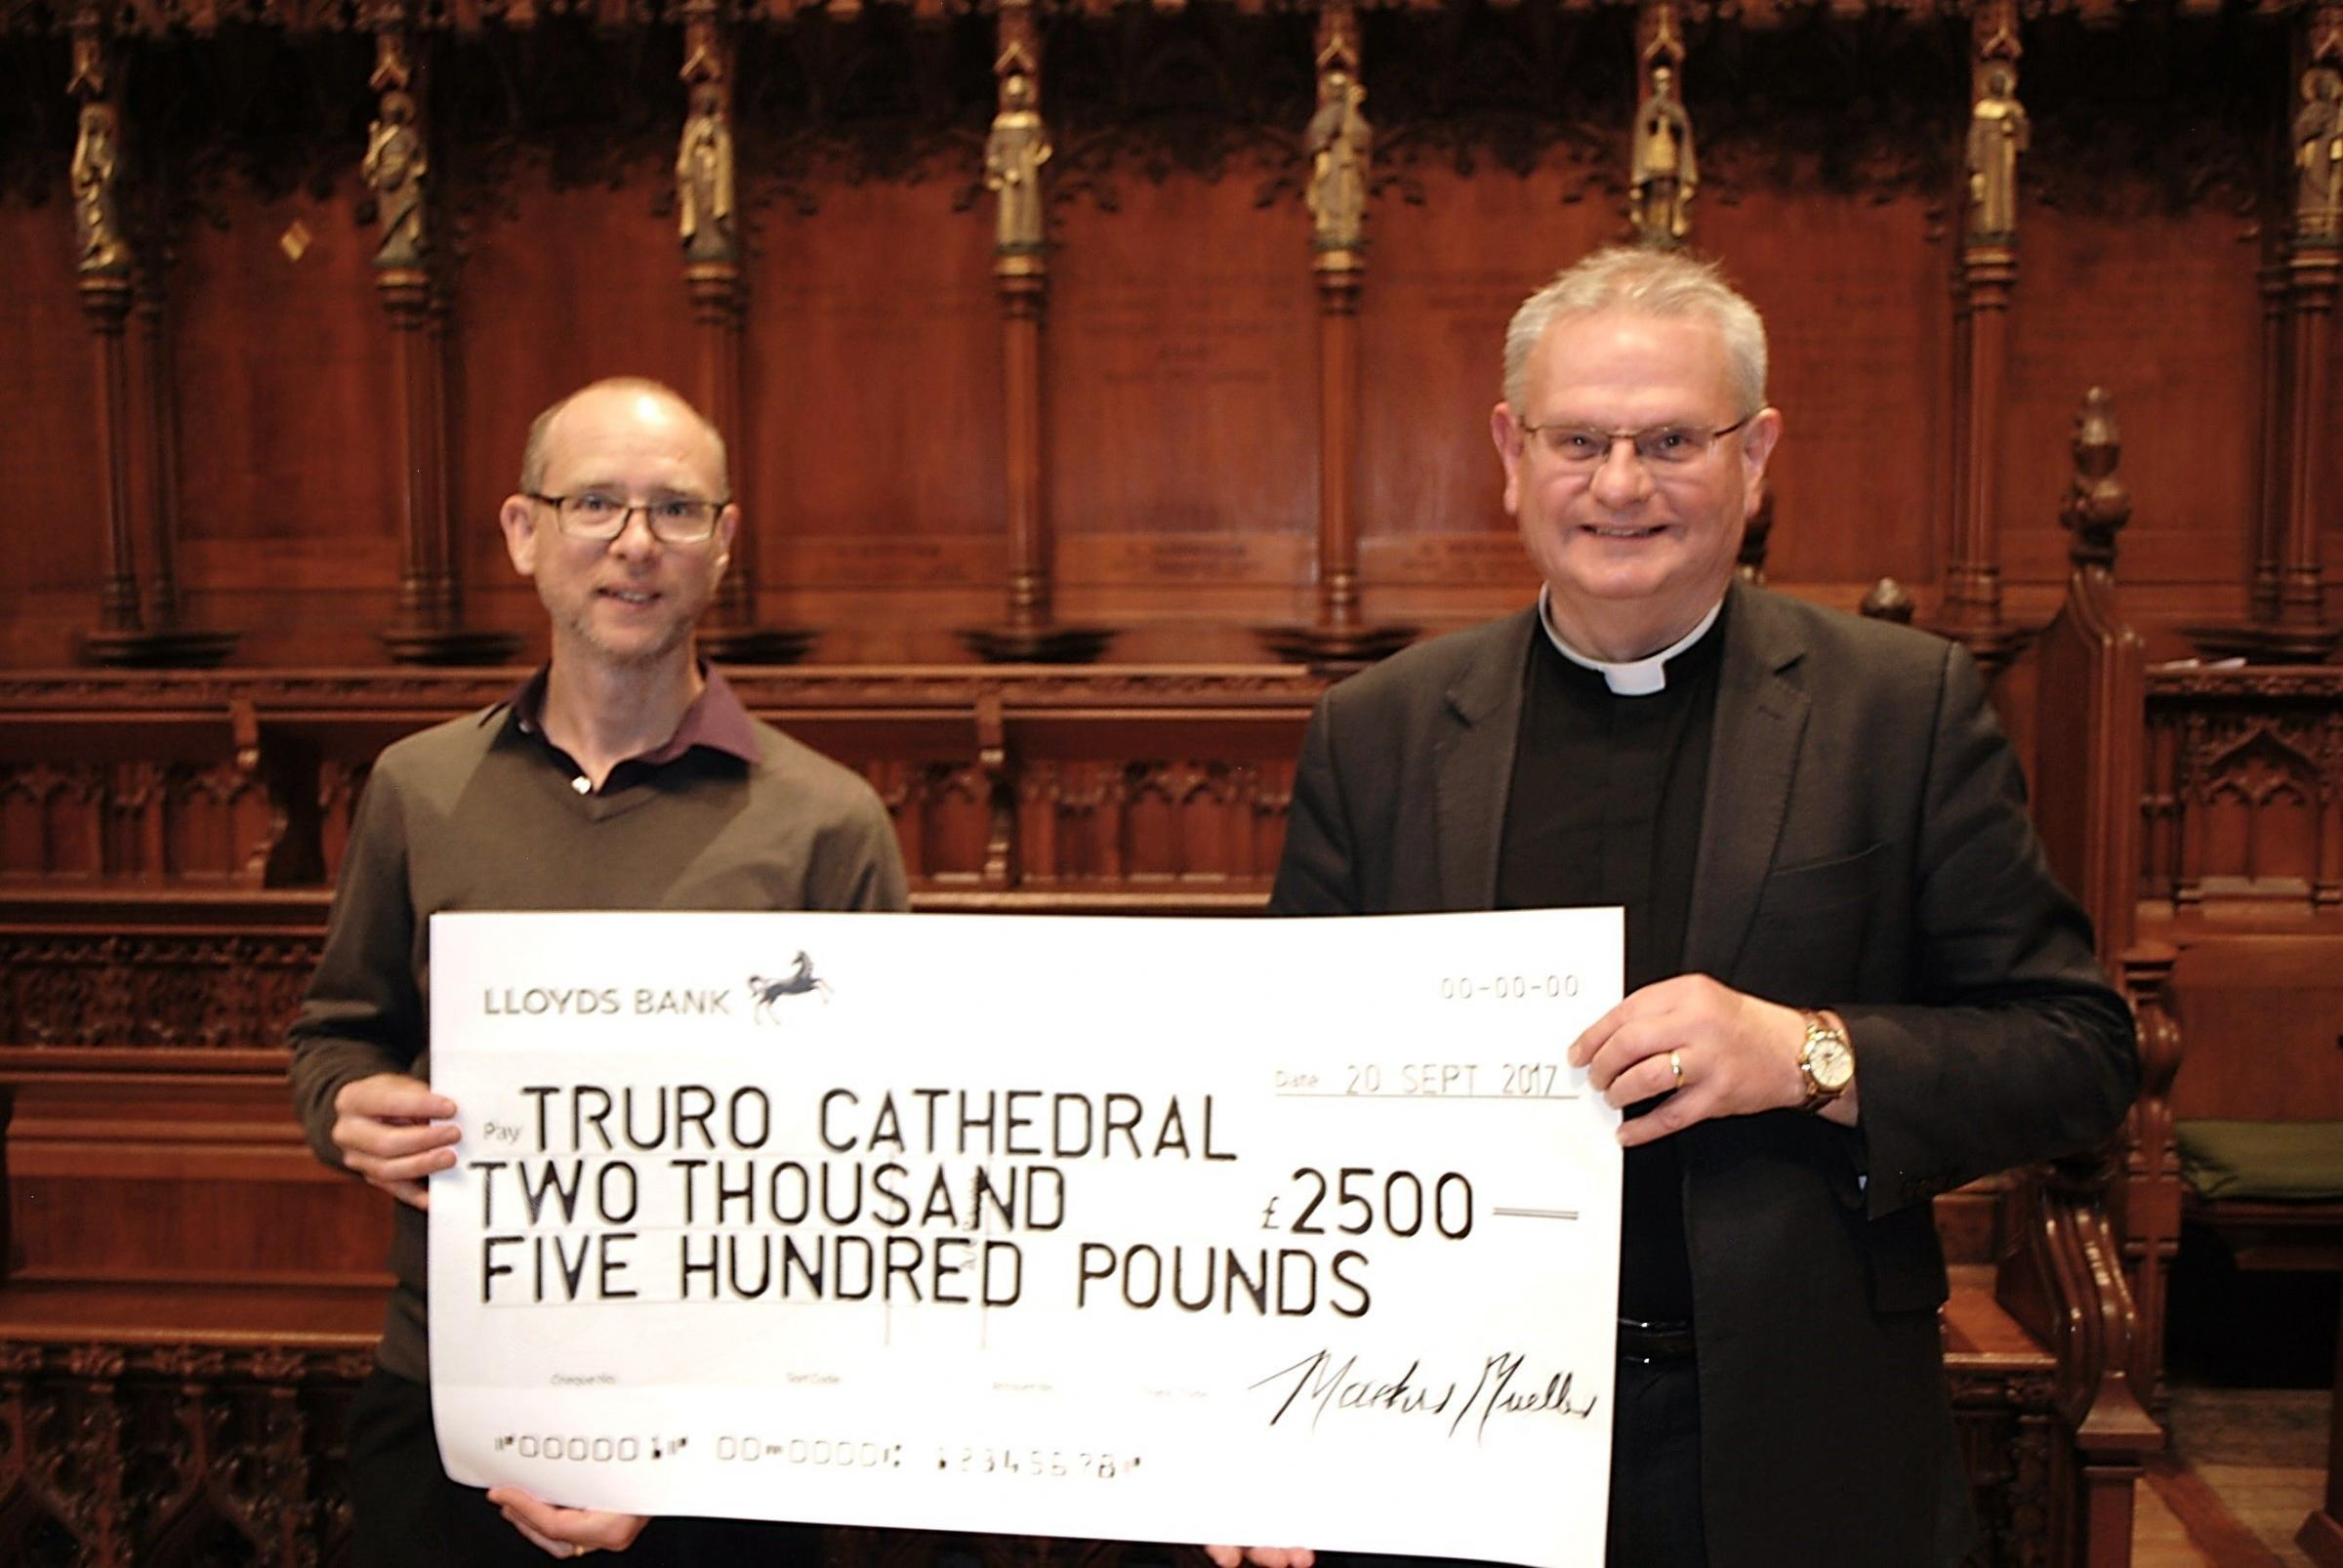 Philip Montgomery-Smith, Truro Symphony Orchestra leader, presents the Very Rev'd Roger Bush, Dean of Truro with a cheque for £2,500 which was raised from a fundraising concert.